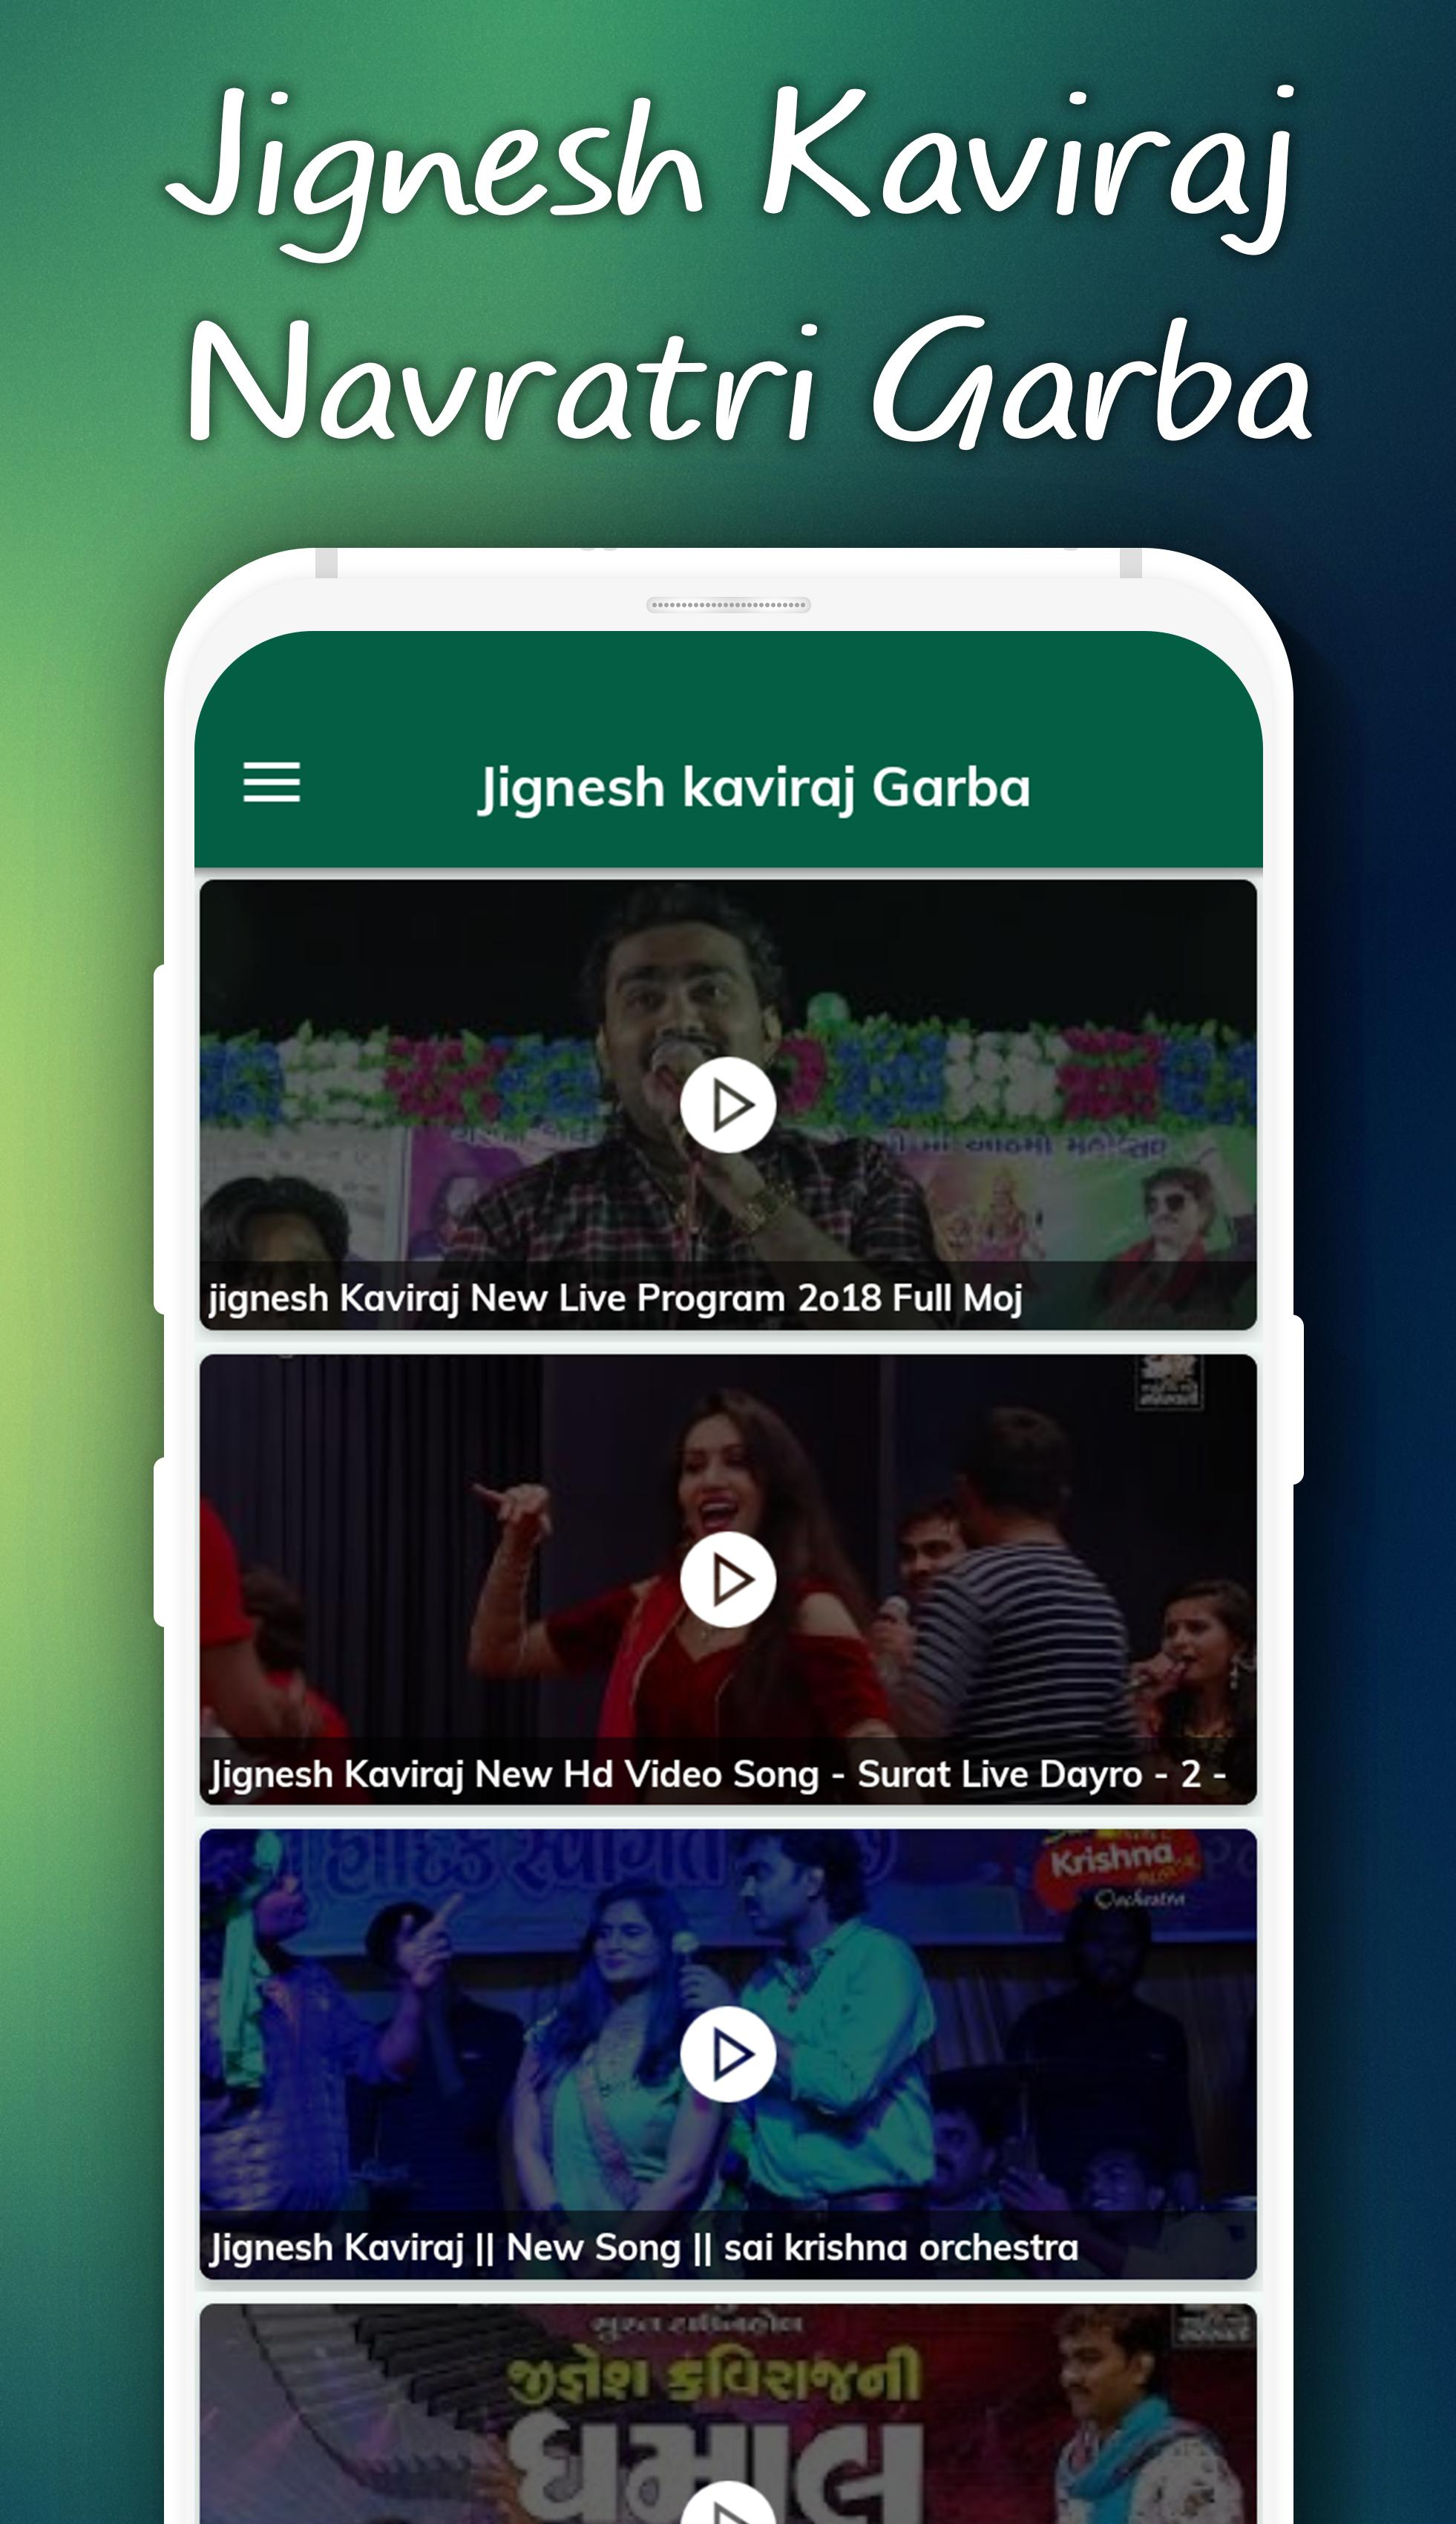 jignesh kaviraj garba 2018 & Jignesh kaviraj song for